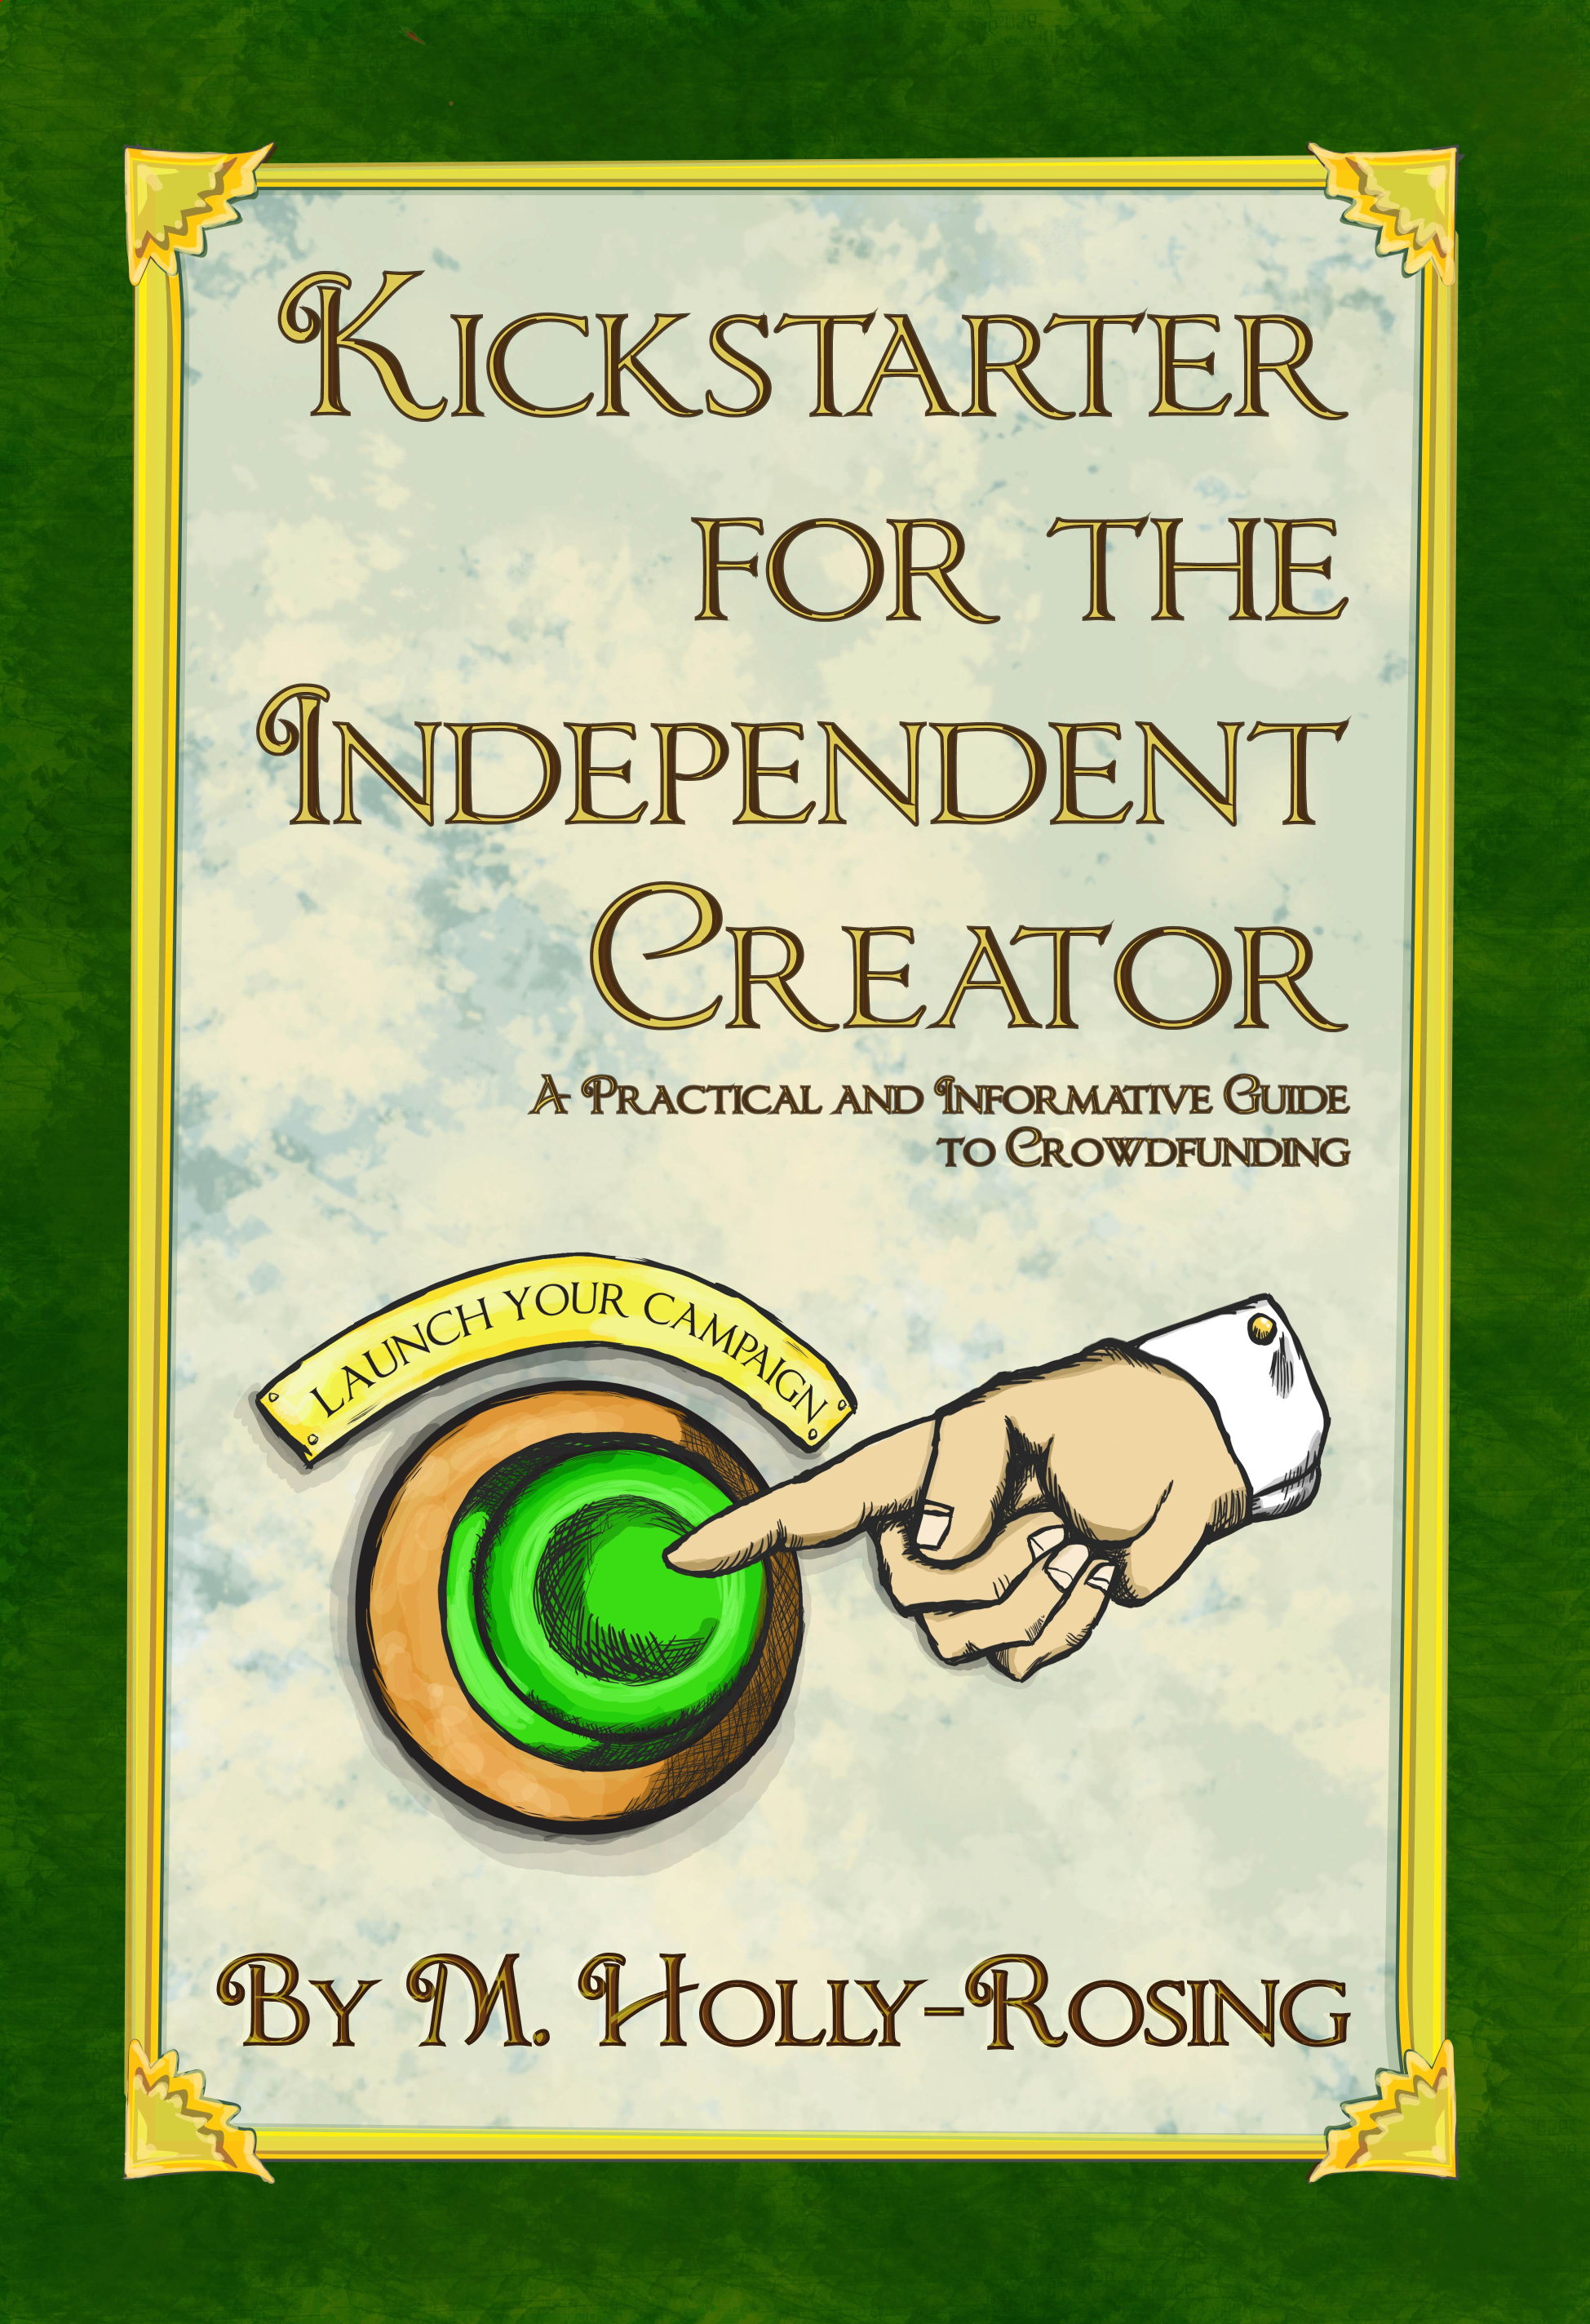 Kickstarter for the Independent Creator: A Practical and Informative Guide  to Crowdfunding, an Ebook by Madeleine Holly-Rosing